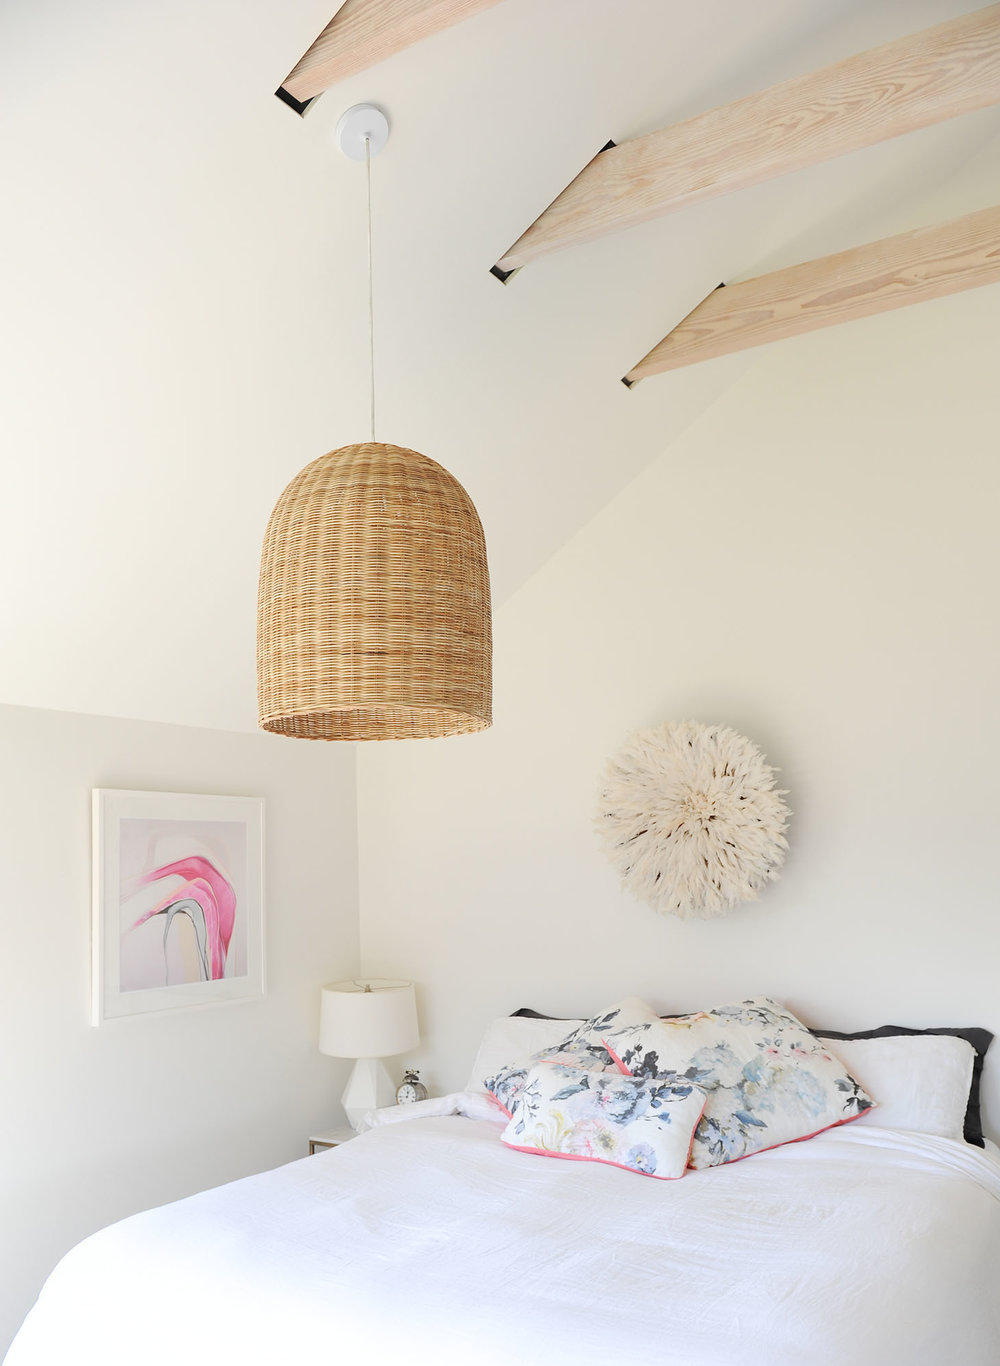 Jillian-Harris-Update-on-Kenny-and-Michelle-Gemmills-Home-Renovation-23.jpg